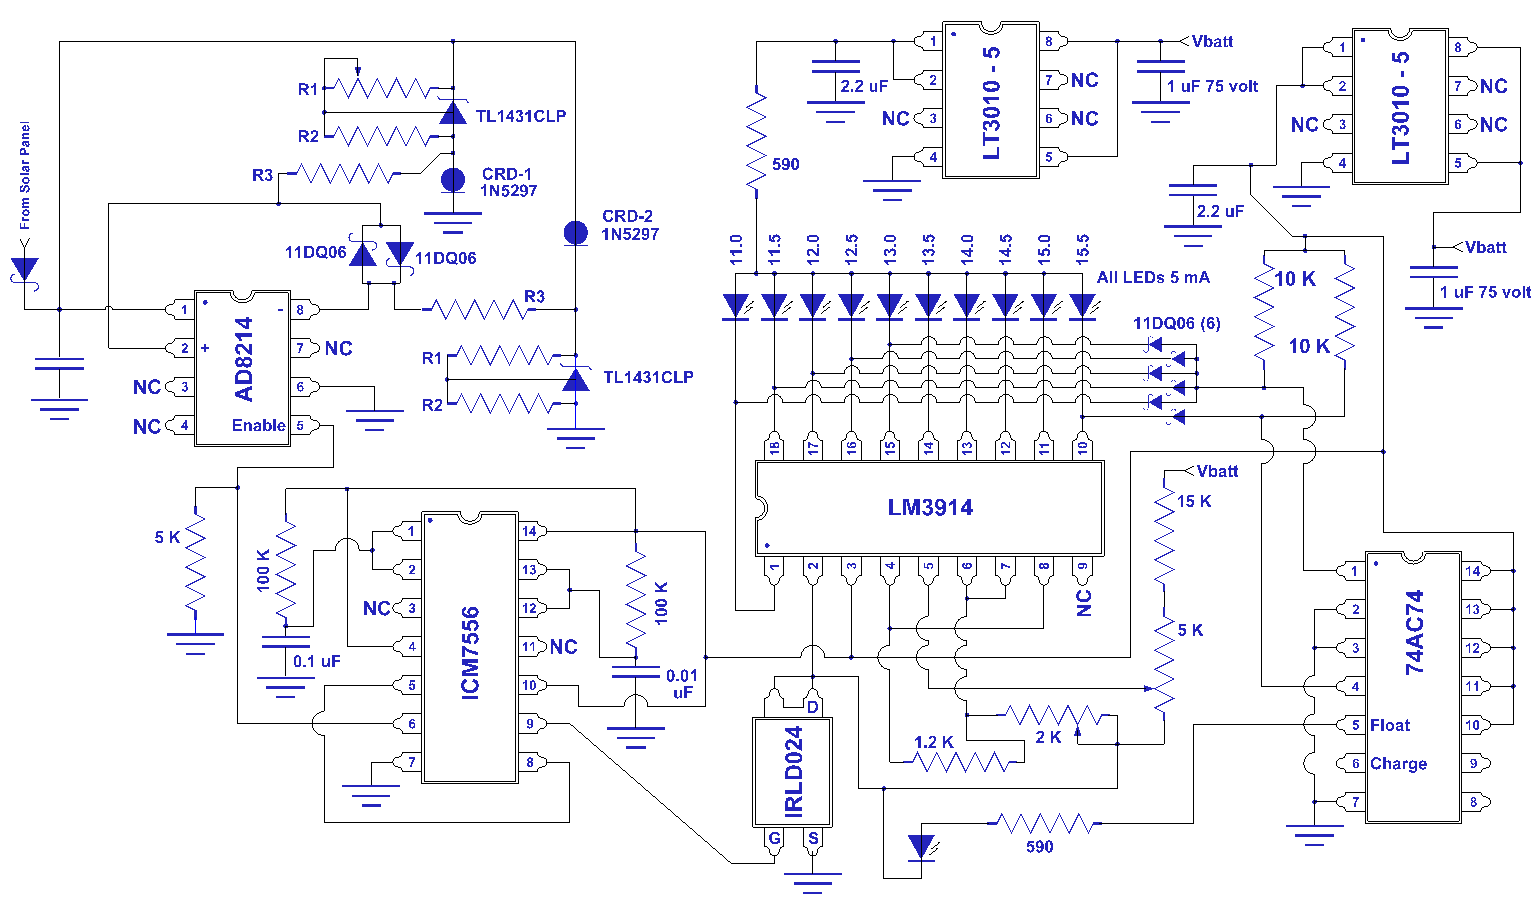 control wiring diagram of apfc panel 2001 ford focus radio solar charge controller circuit simple mppt